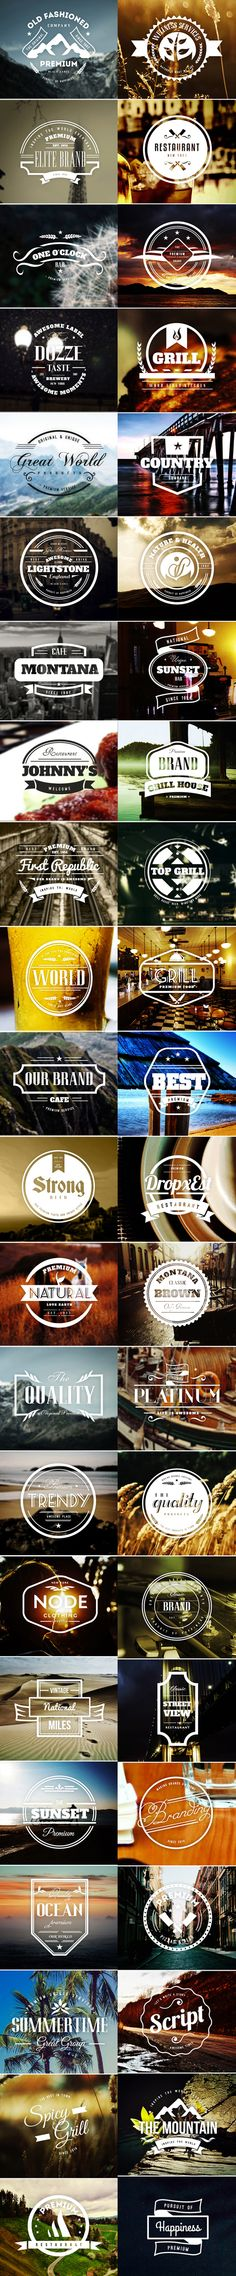 45 Vintage Labels & Badges Logos - Premium Bundle by Design District, via…